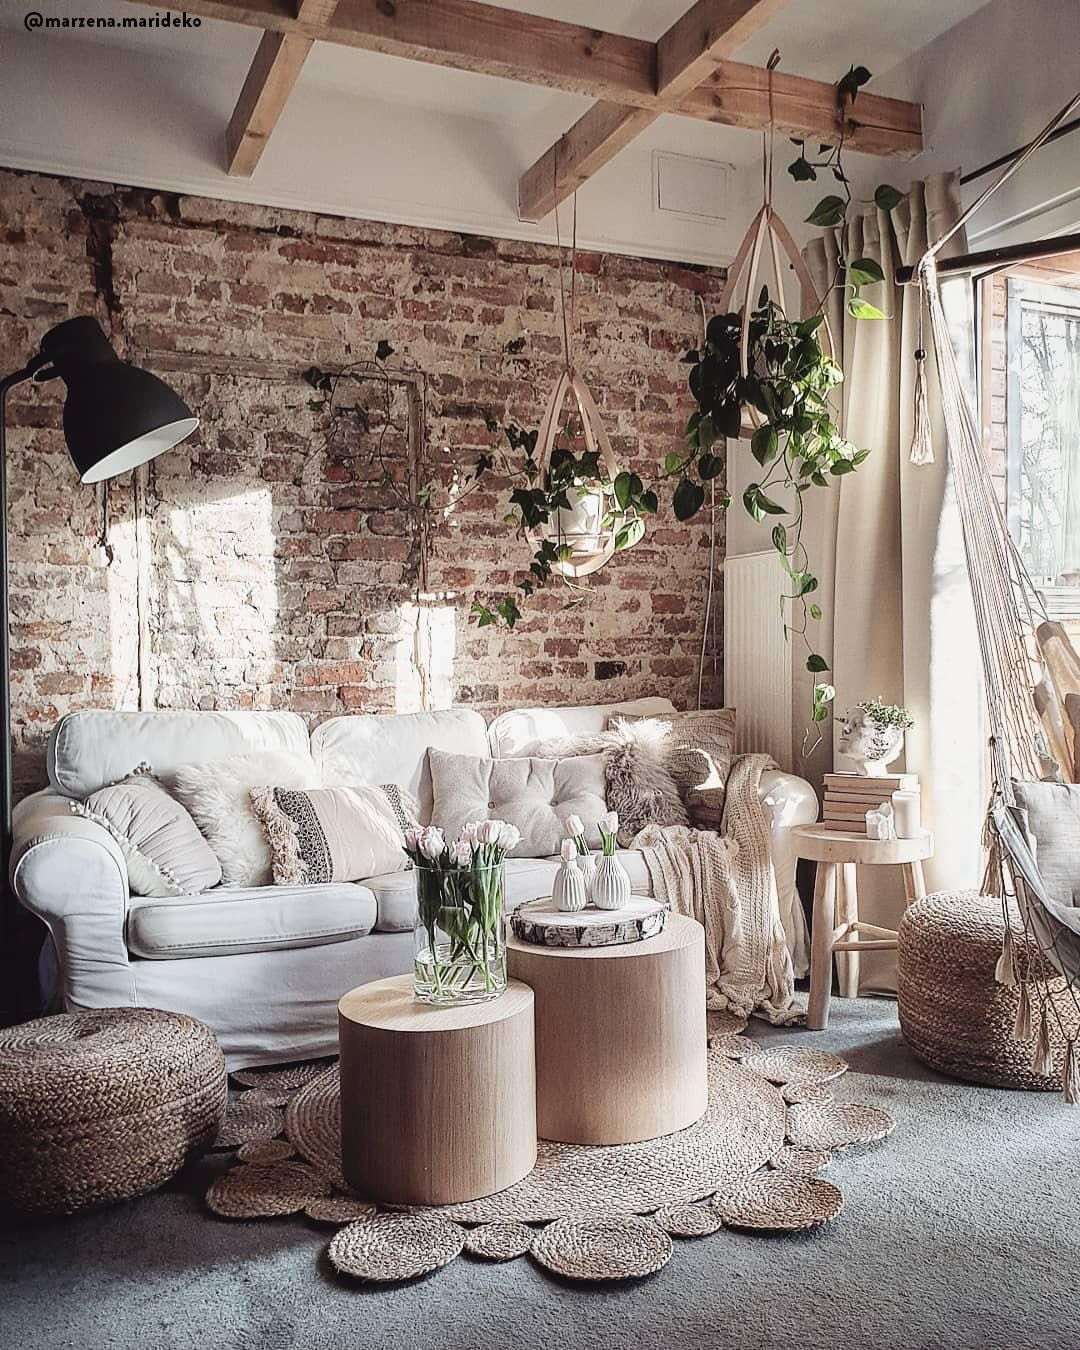 Pin By Maria Brissaih On Vision Board In 2021 Tumblr Rooms Country Living Room Boho Living Room Beautiful living rooms tumblr